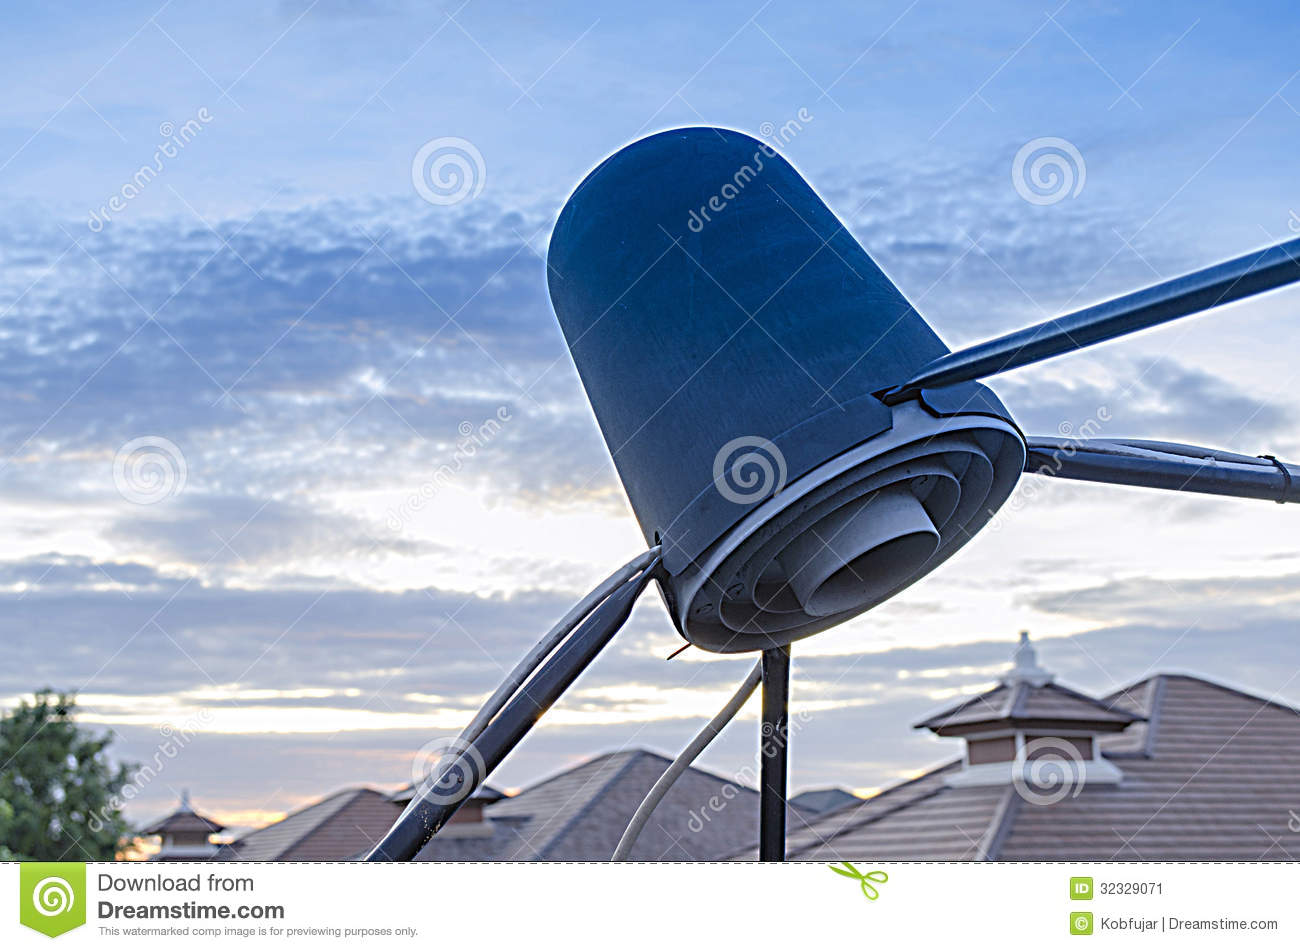 satellite signal wave receiver dish for television 109 stock image image 32329071. Black Bedroom Furniture Sets. Home Design Ideas